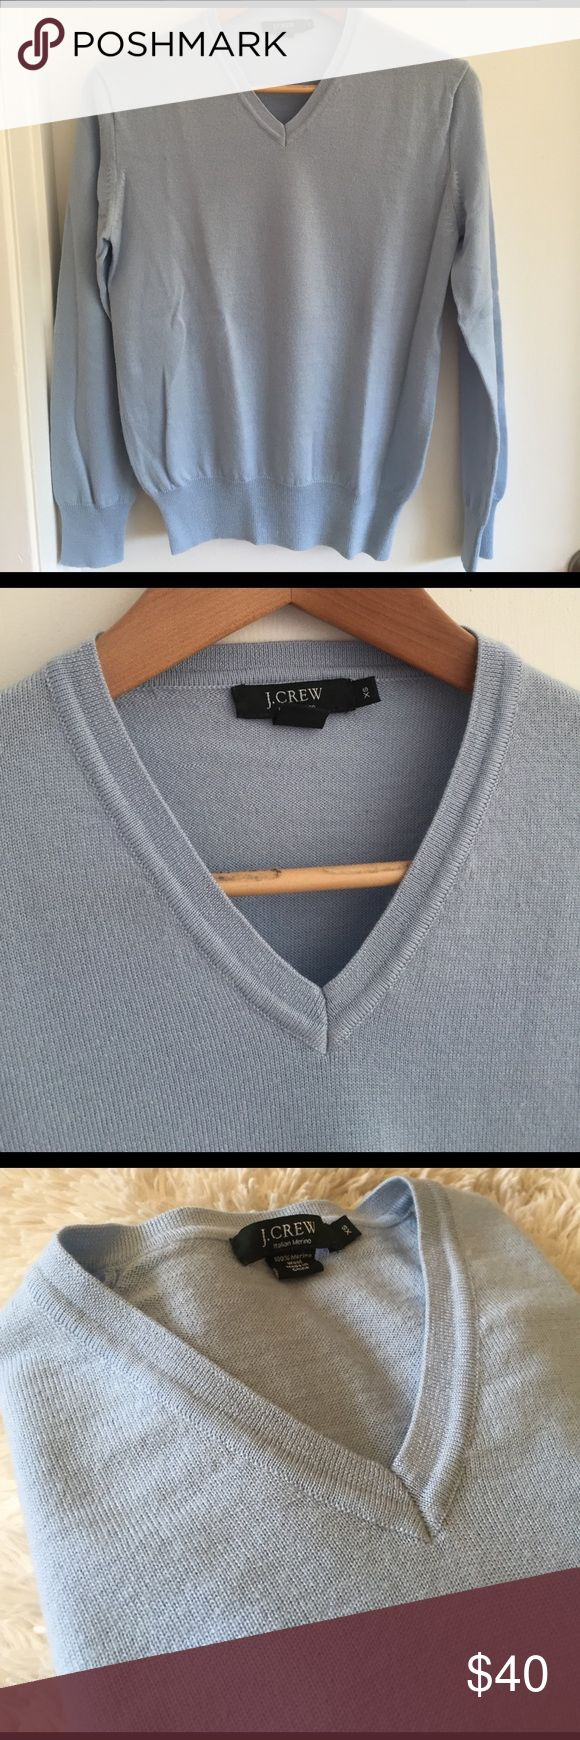 Jcrew Men V Neck Sweater Color: beautiful sky blue, V-neck, only wore once, very great condition. 100% merino wool. J. Crew Sweaters V-Neck